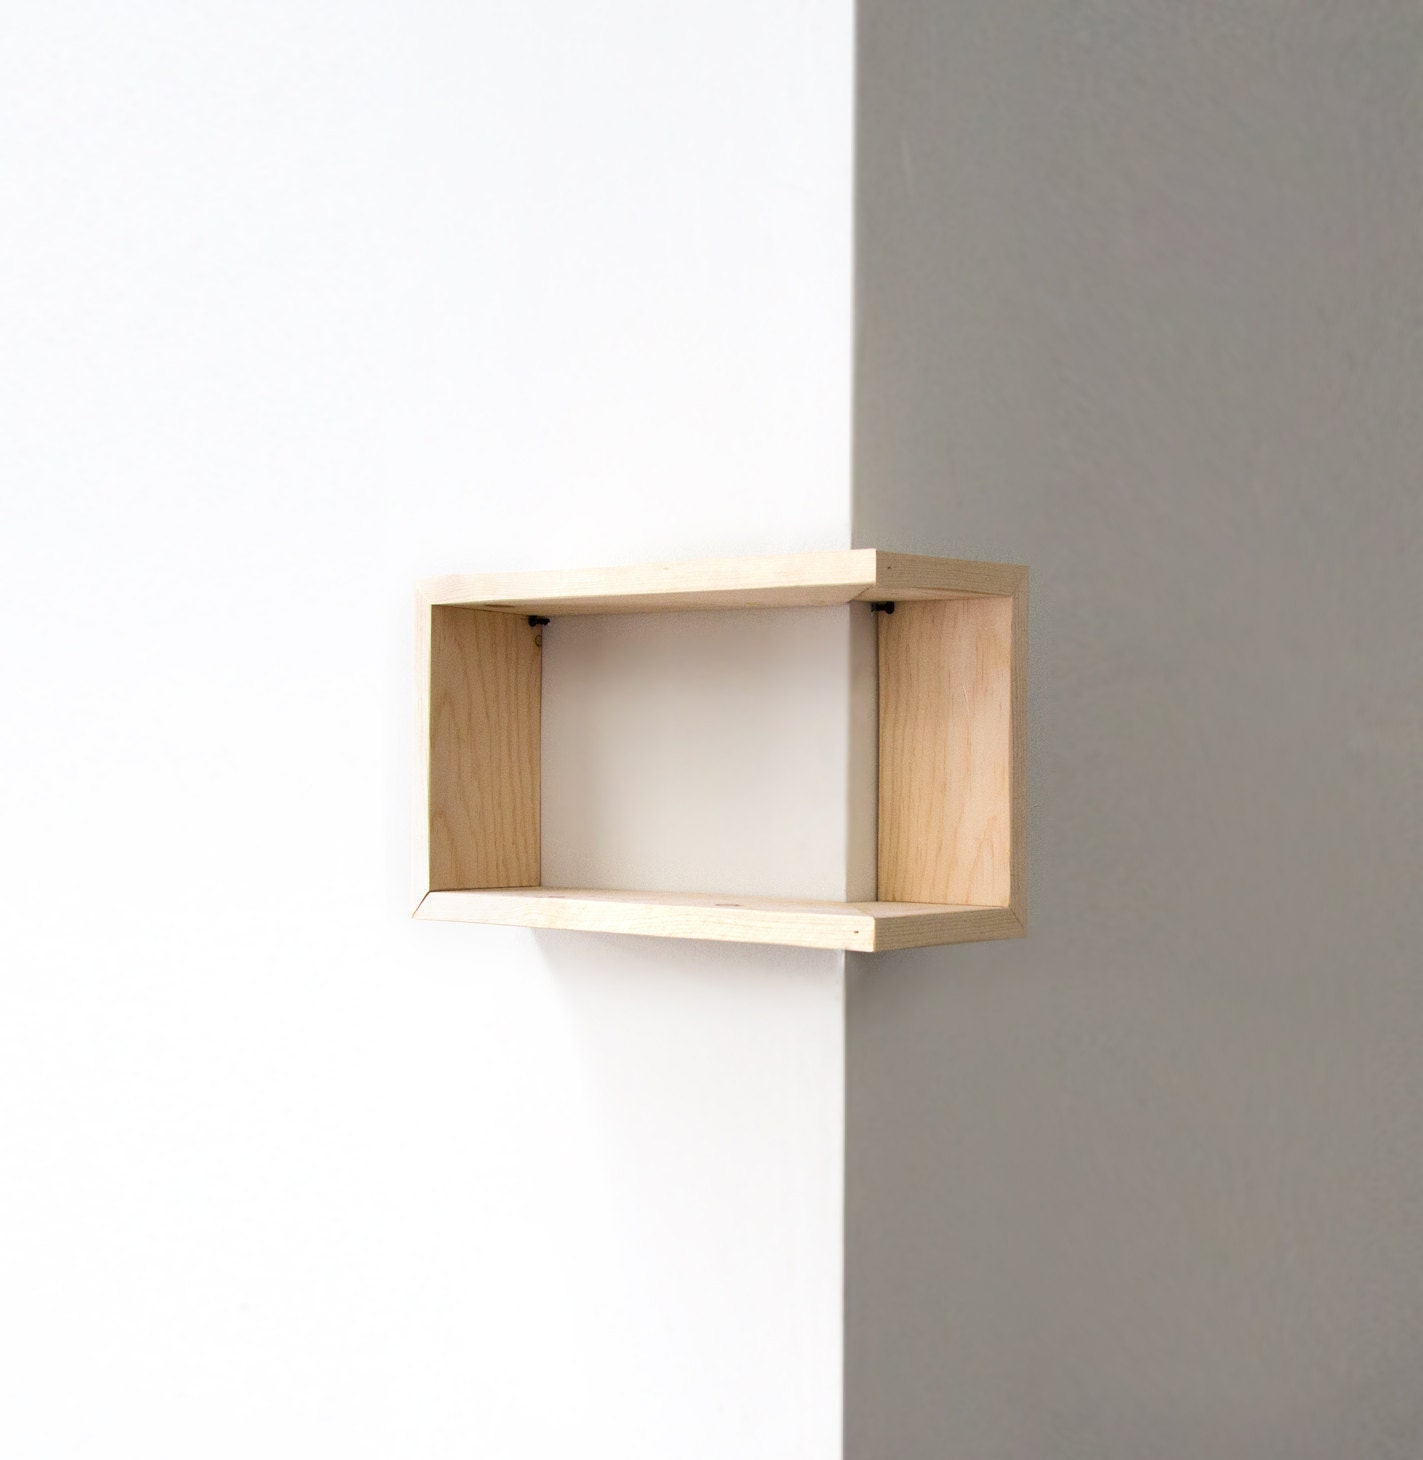 clean and simple  etsy - wooden shelf wooden shelves wood shelf geometric shelves geometric shelfcorner